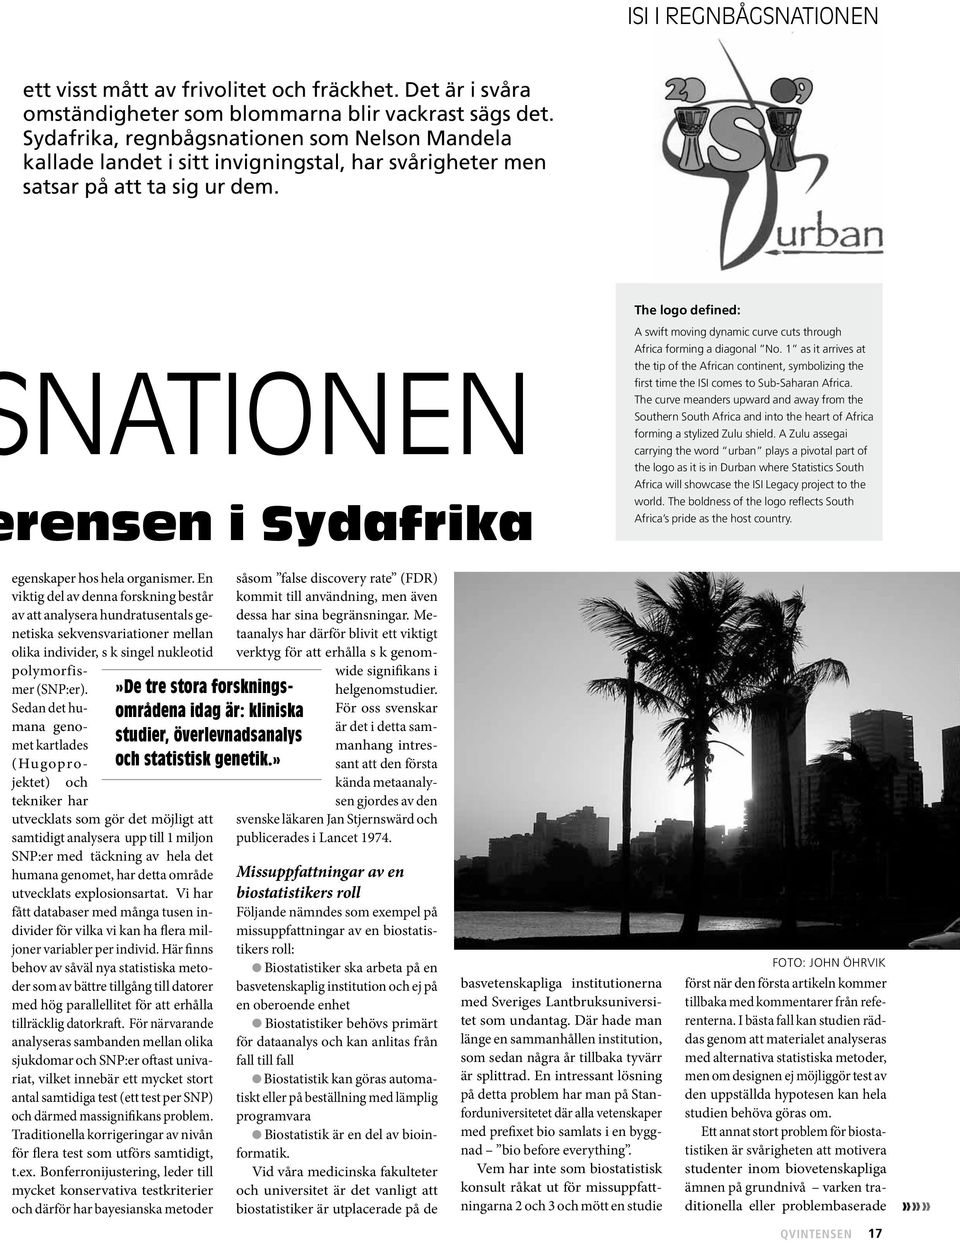 nationen rensen i Sydafrika The logo defined: A swift moving dynamic curve cuts through Africa forming a diagonal No.